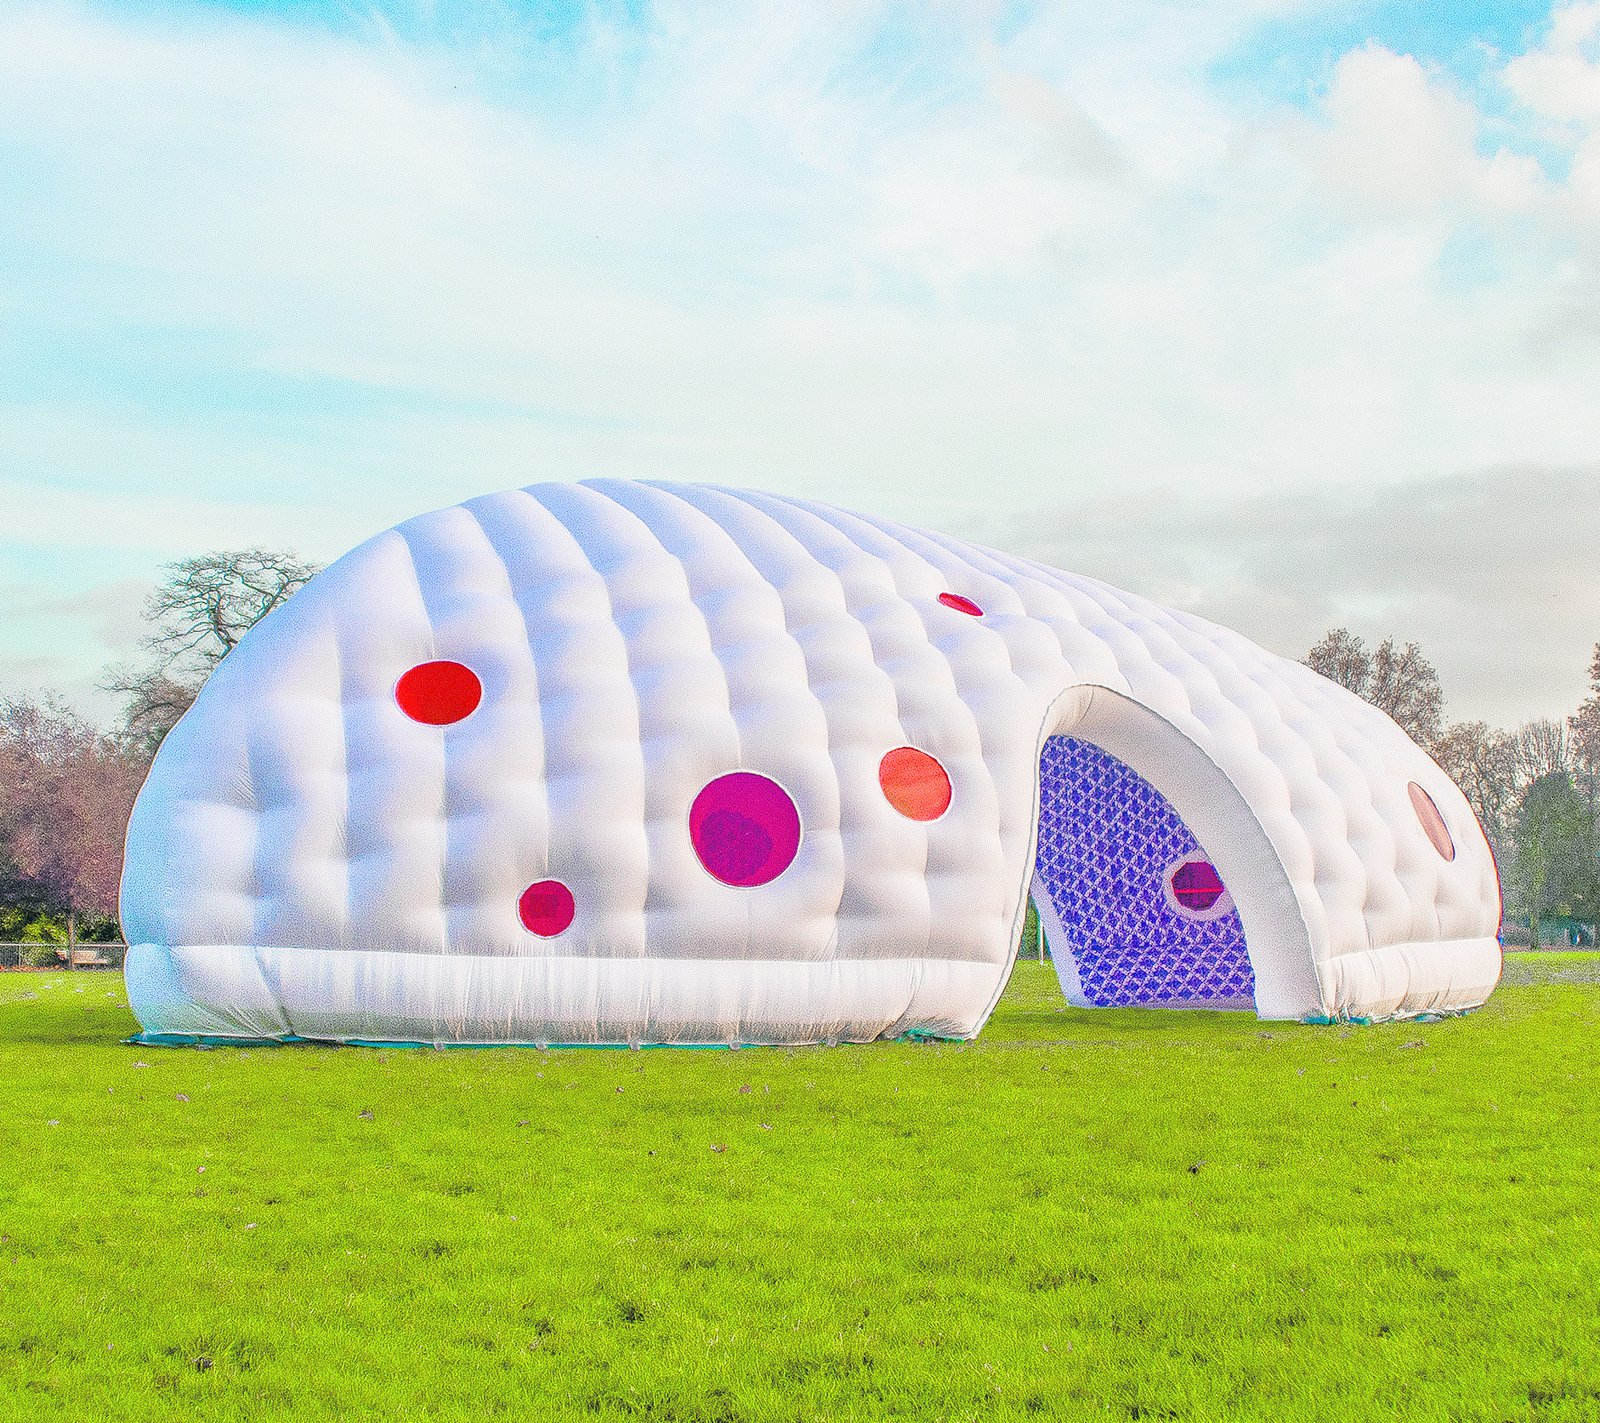 Inflatable Space, Penttinen Schöne, 2010  Commissioned as an interactive arts project in Essex, England, this swollen, whimsical structure is now used as a kid-friendly pavilion for a housing estate.  Seriously Tiny (and Slightly Strange) Hangouts That Push the Limits of Micro-Living by Luke Hopping